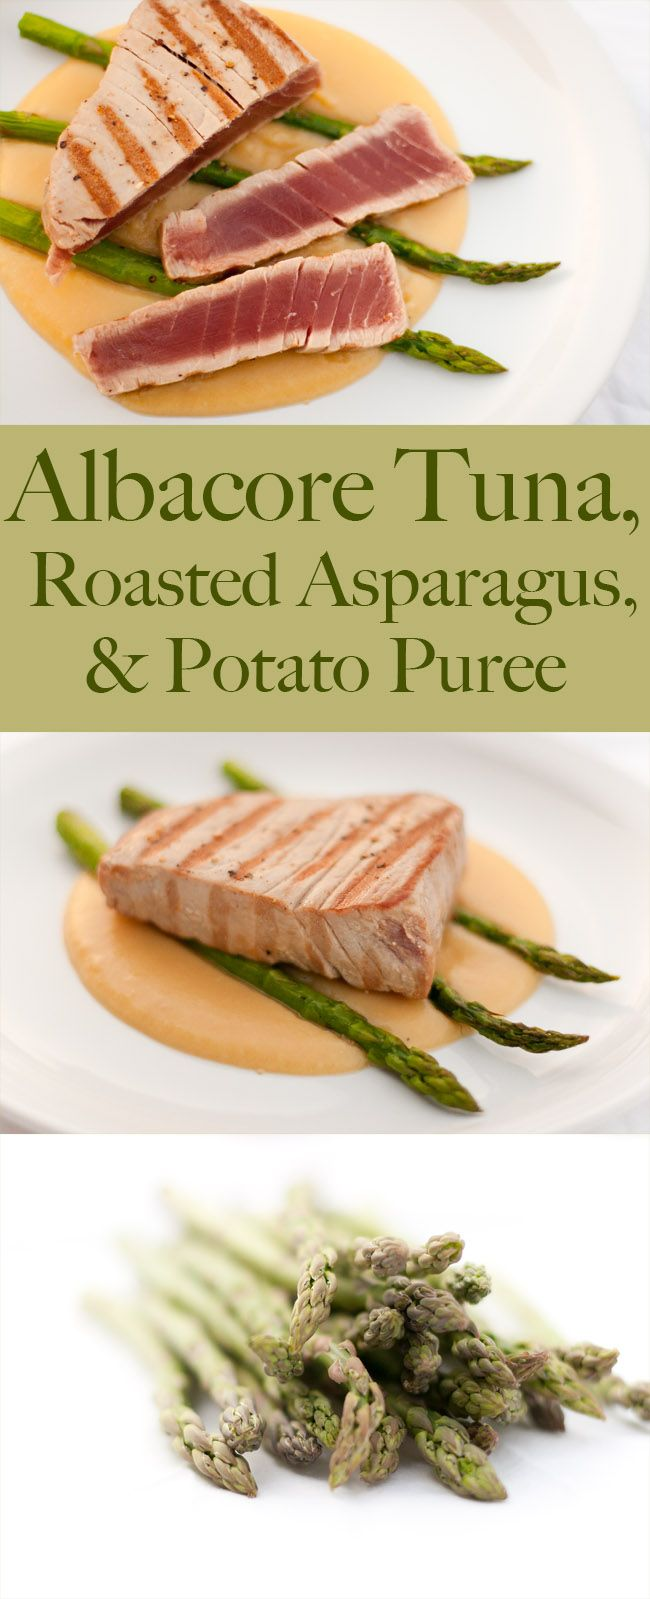 Seared Albacore Tuna over Roasted Asparagus and Potato Puree a great healthy dinner. Pin now, because you're gonna want to make this!